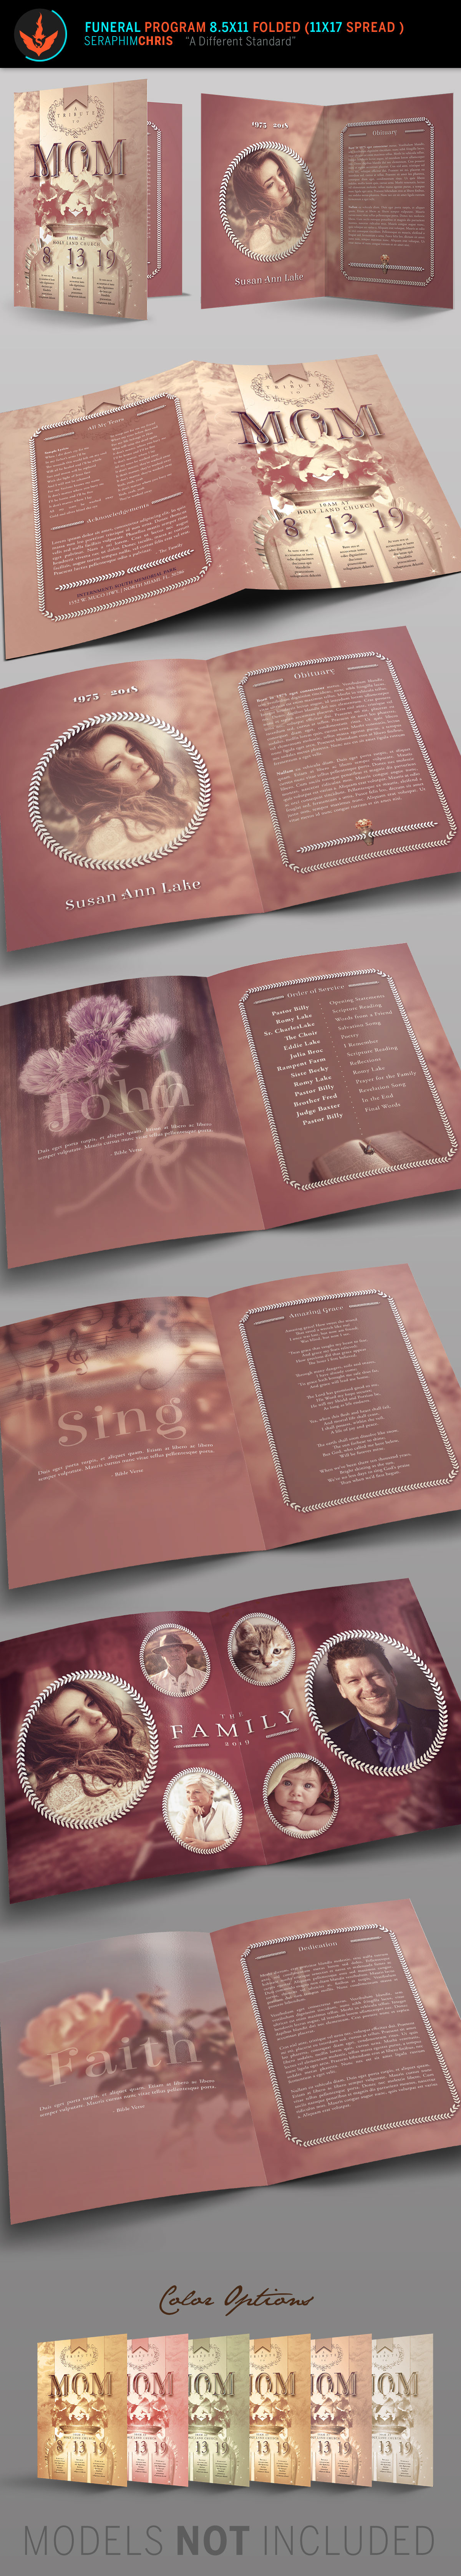 tribute to mom funeral program booklet template on behance